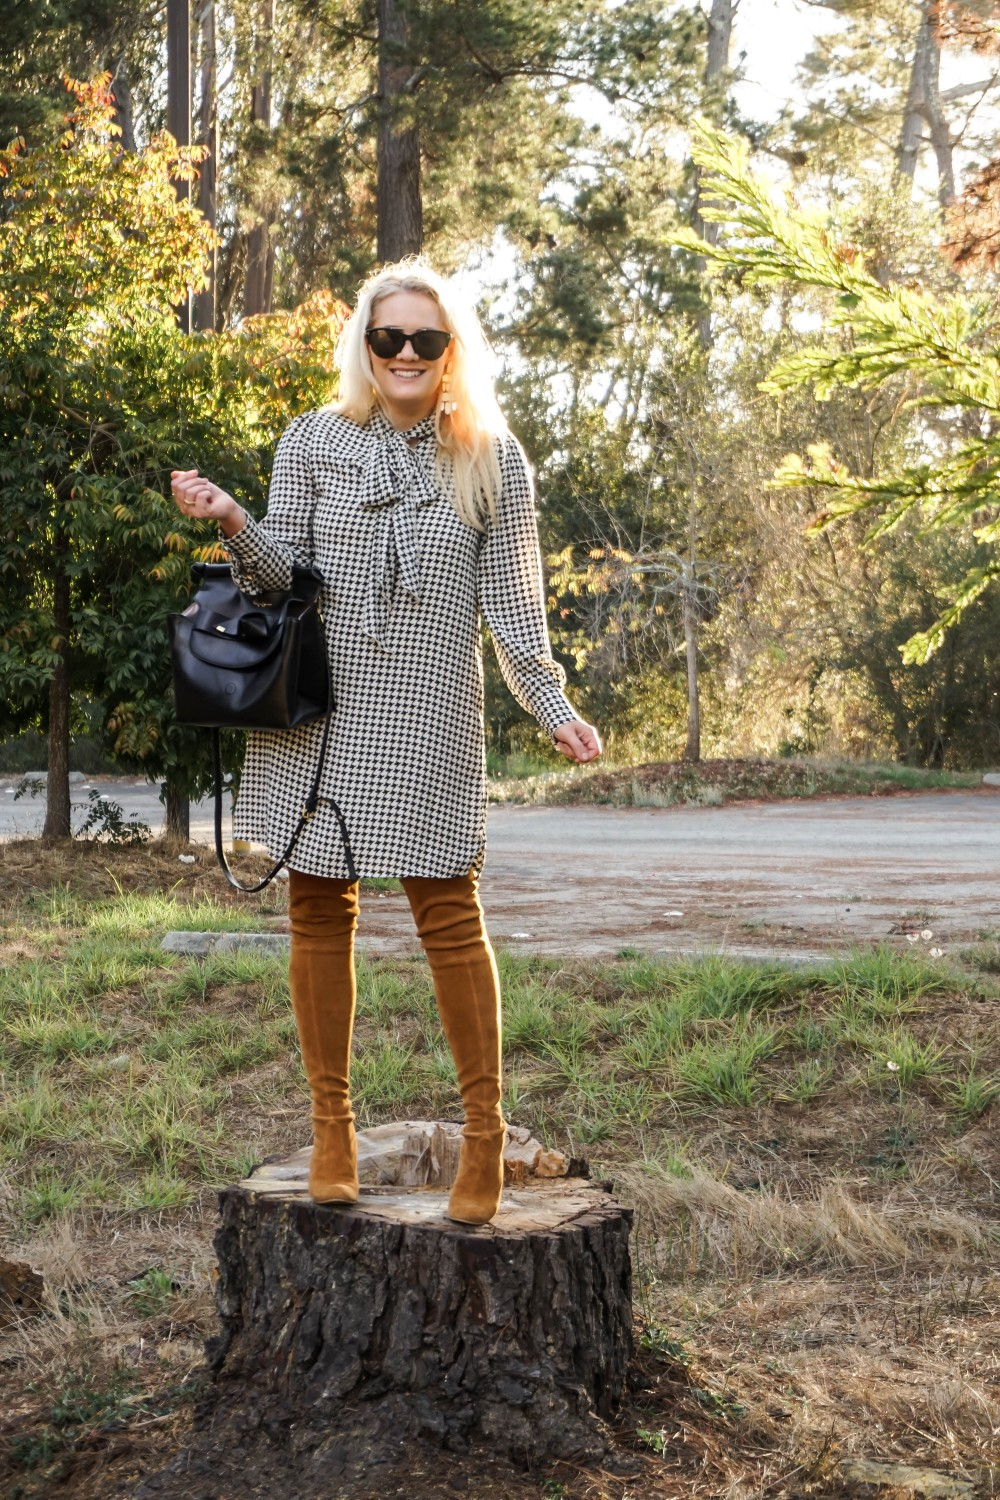 Fall Style in This Houndstooth Dress, Who What Wear Houndstooth Dress, Target Style, Fall Dress Under $30, Have Need Want